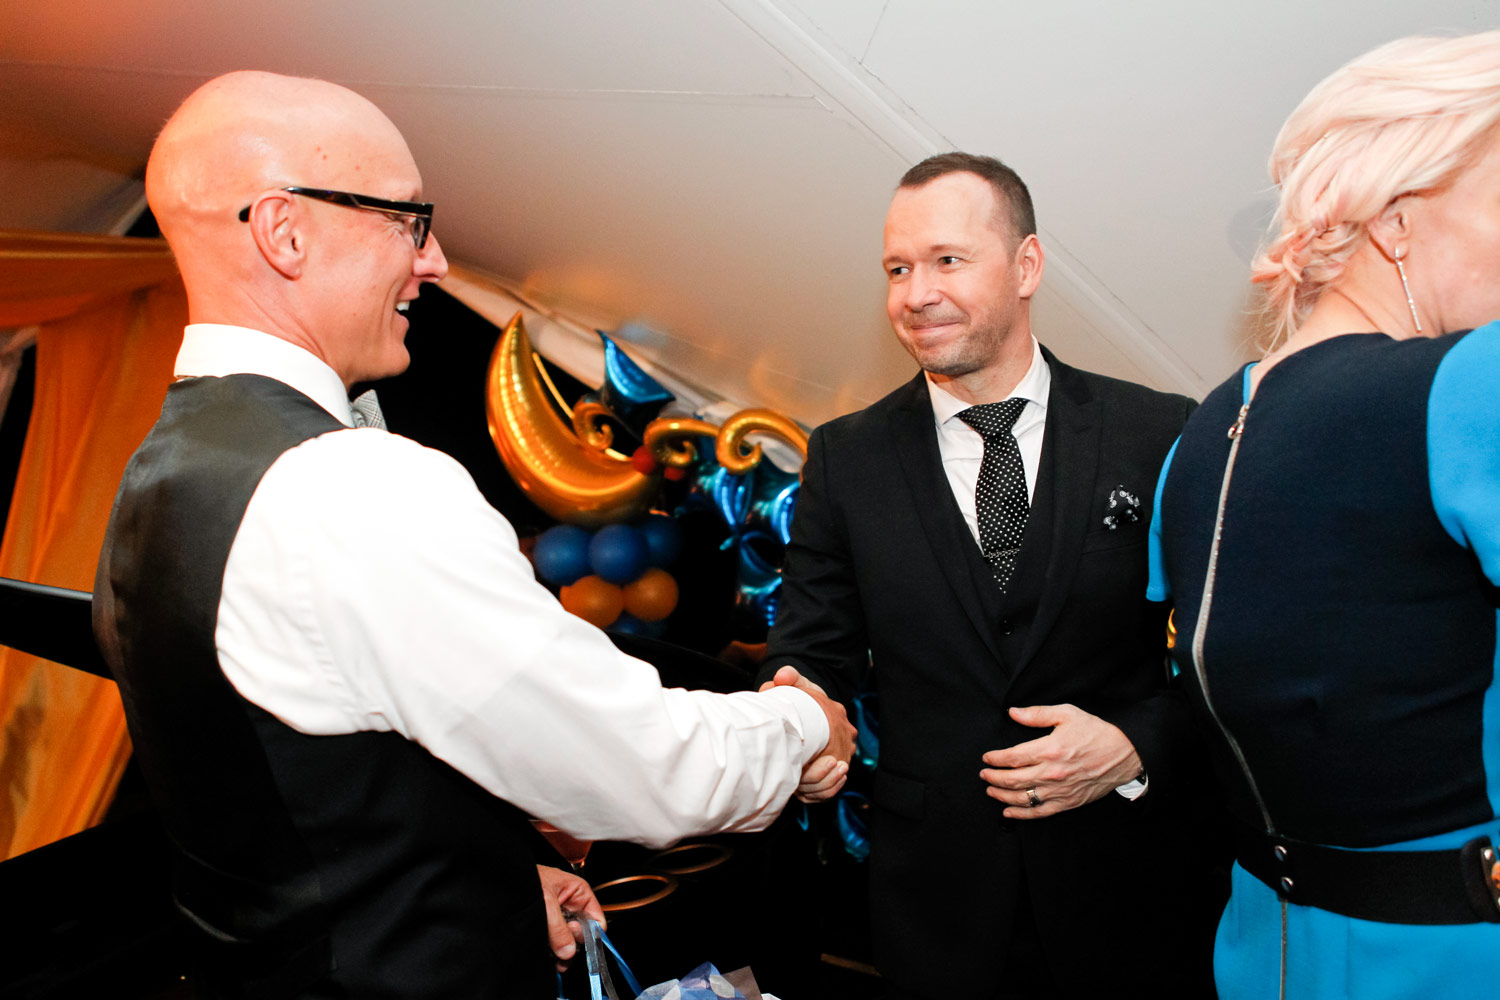 event-photographer-madison-wi-autism-ruthie-hauge-generation-rescue-night-of-hope-oscar-swan-jenny-mccarthy-donnie-wahlberg-53.jpg